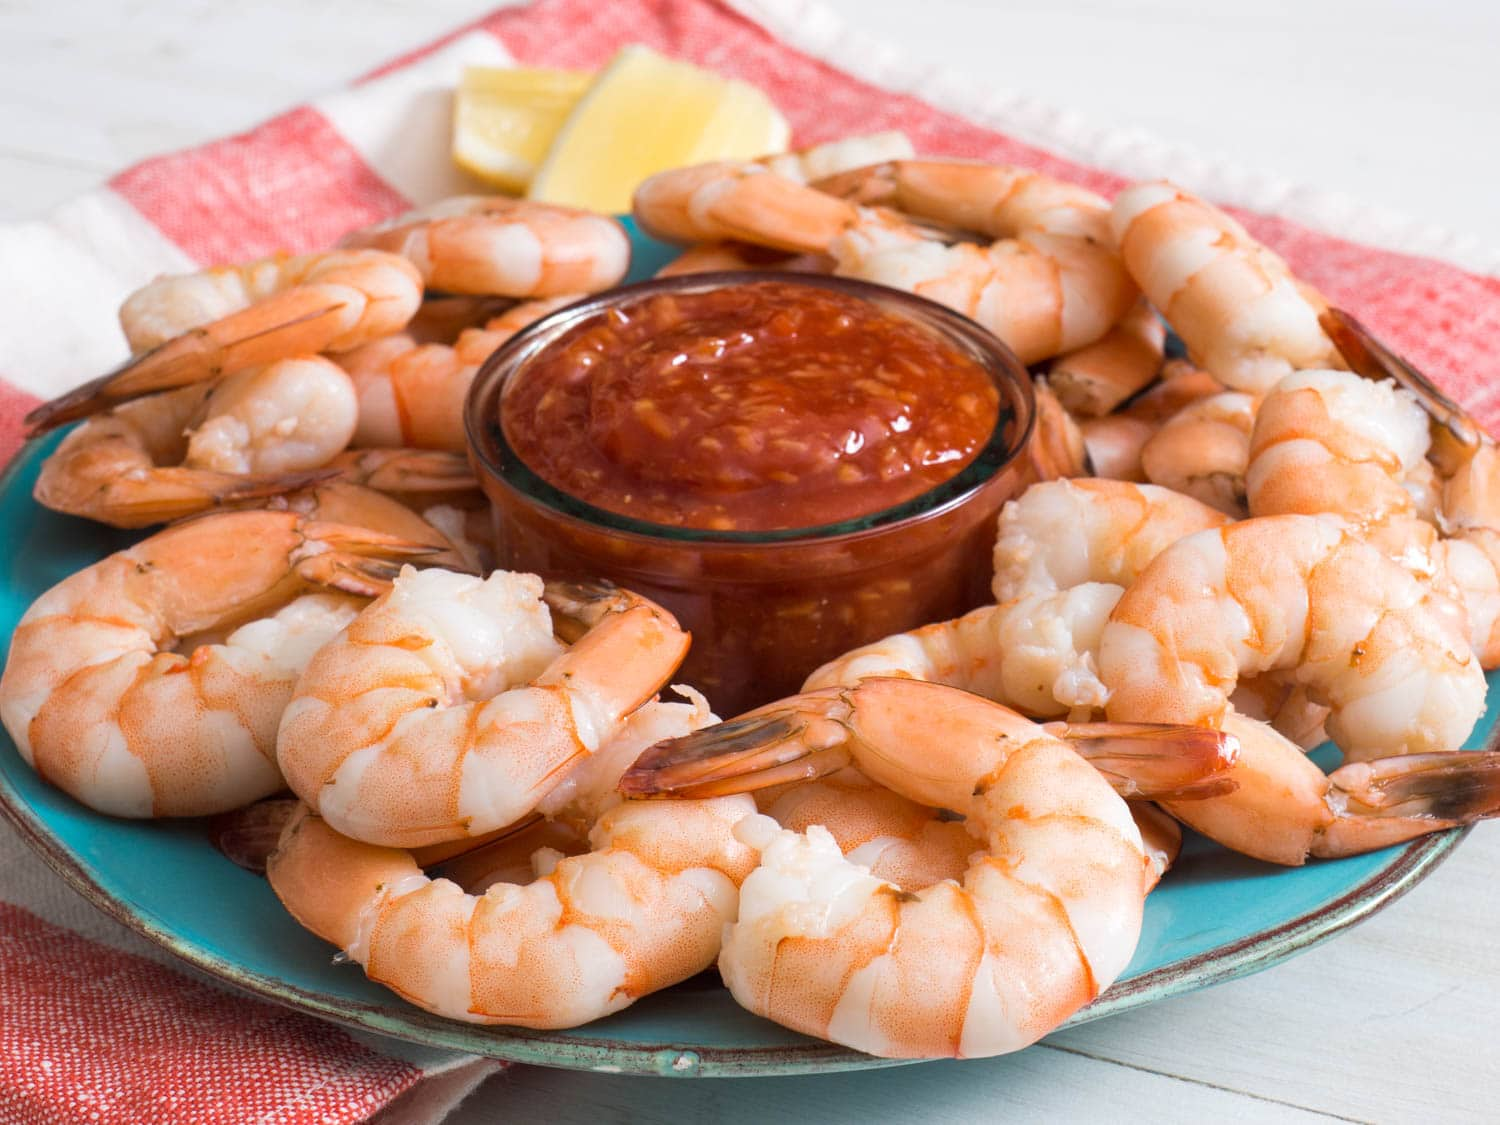 Opaque color shrimp once shrimp are cooked - Opaque Color Shrimp Once Shrimp Are Cooked 4